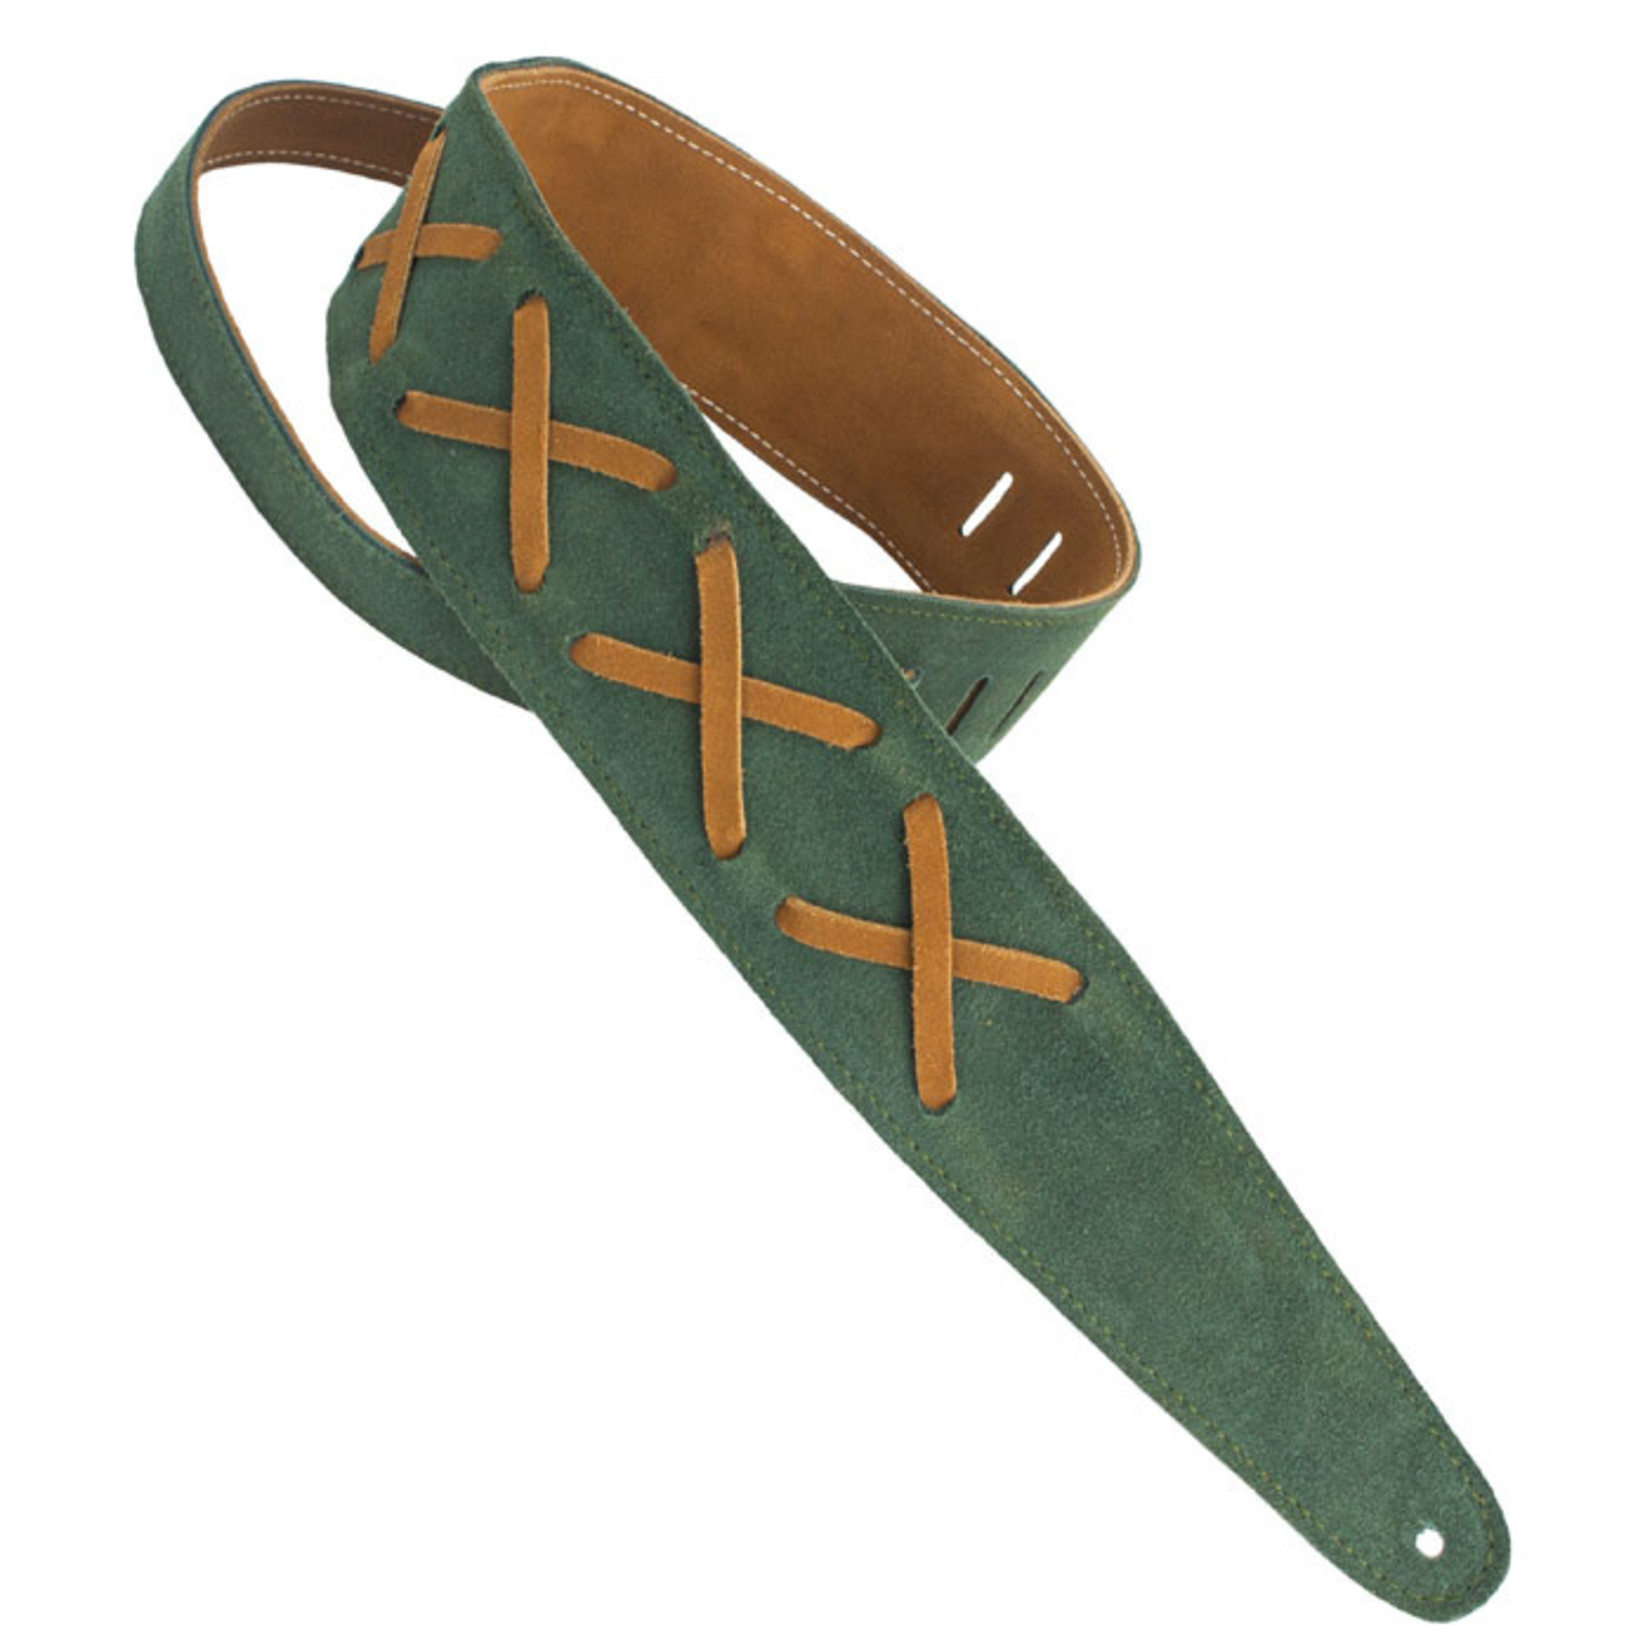 """Henry Heller Henry Heller Premium Suede 2.5"""" Guitar Strap with Gilmour-Inspired Leather Lace Xs, Green/Brown"""